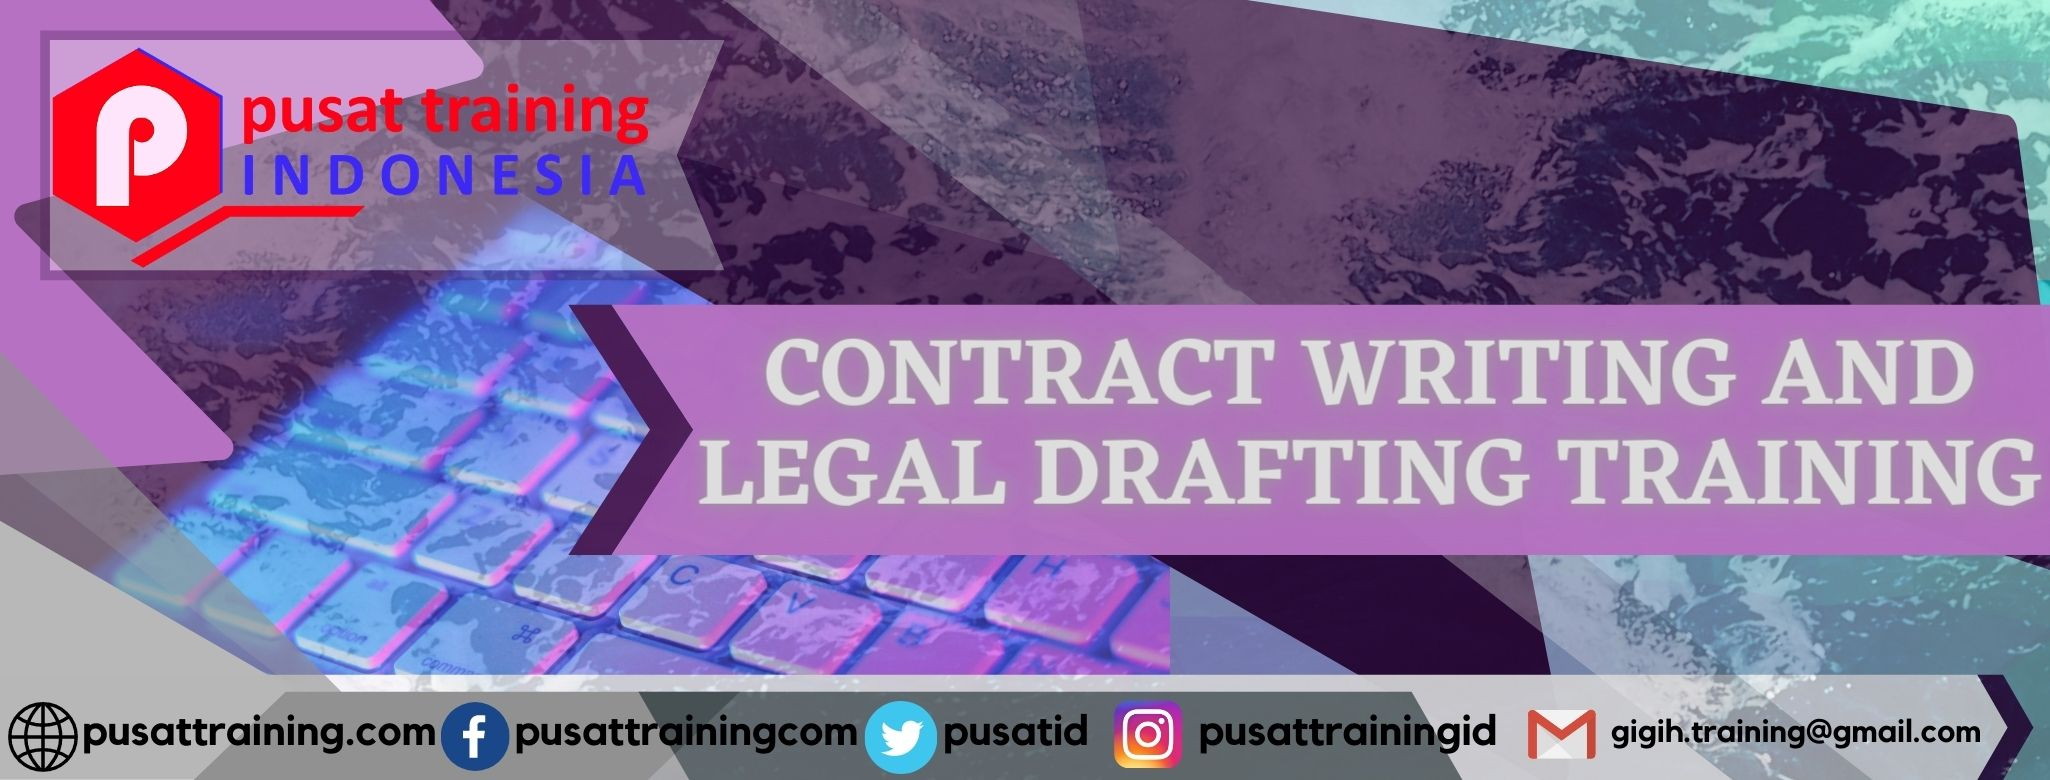 CONTRACT WRITING AND LEGAL DRAFTING TRAINING